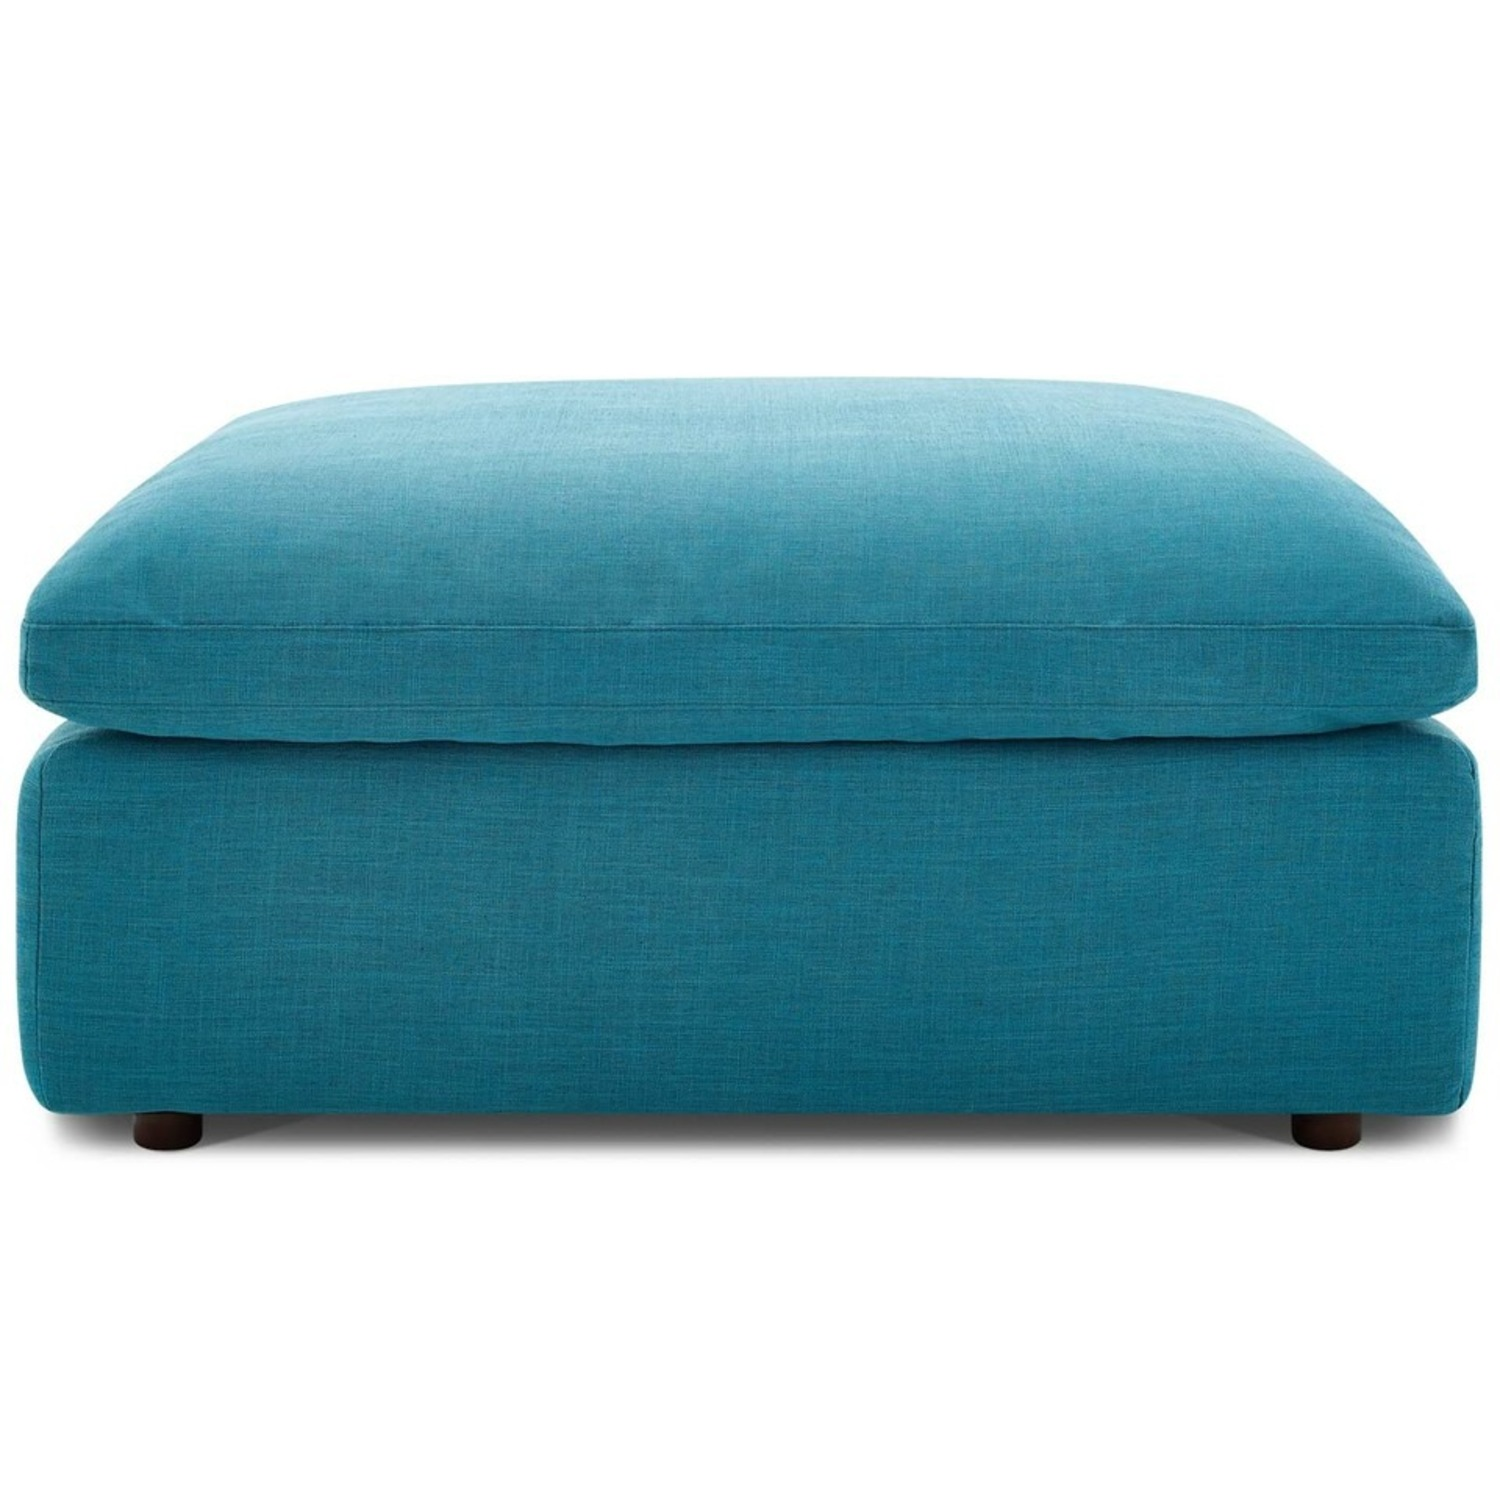 6-Piece Sectional Sofa In Teal Linen Fabric - image-7